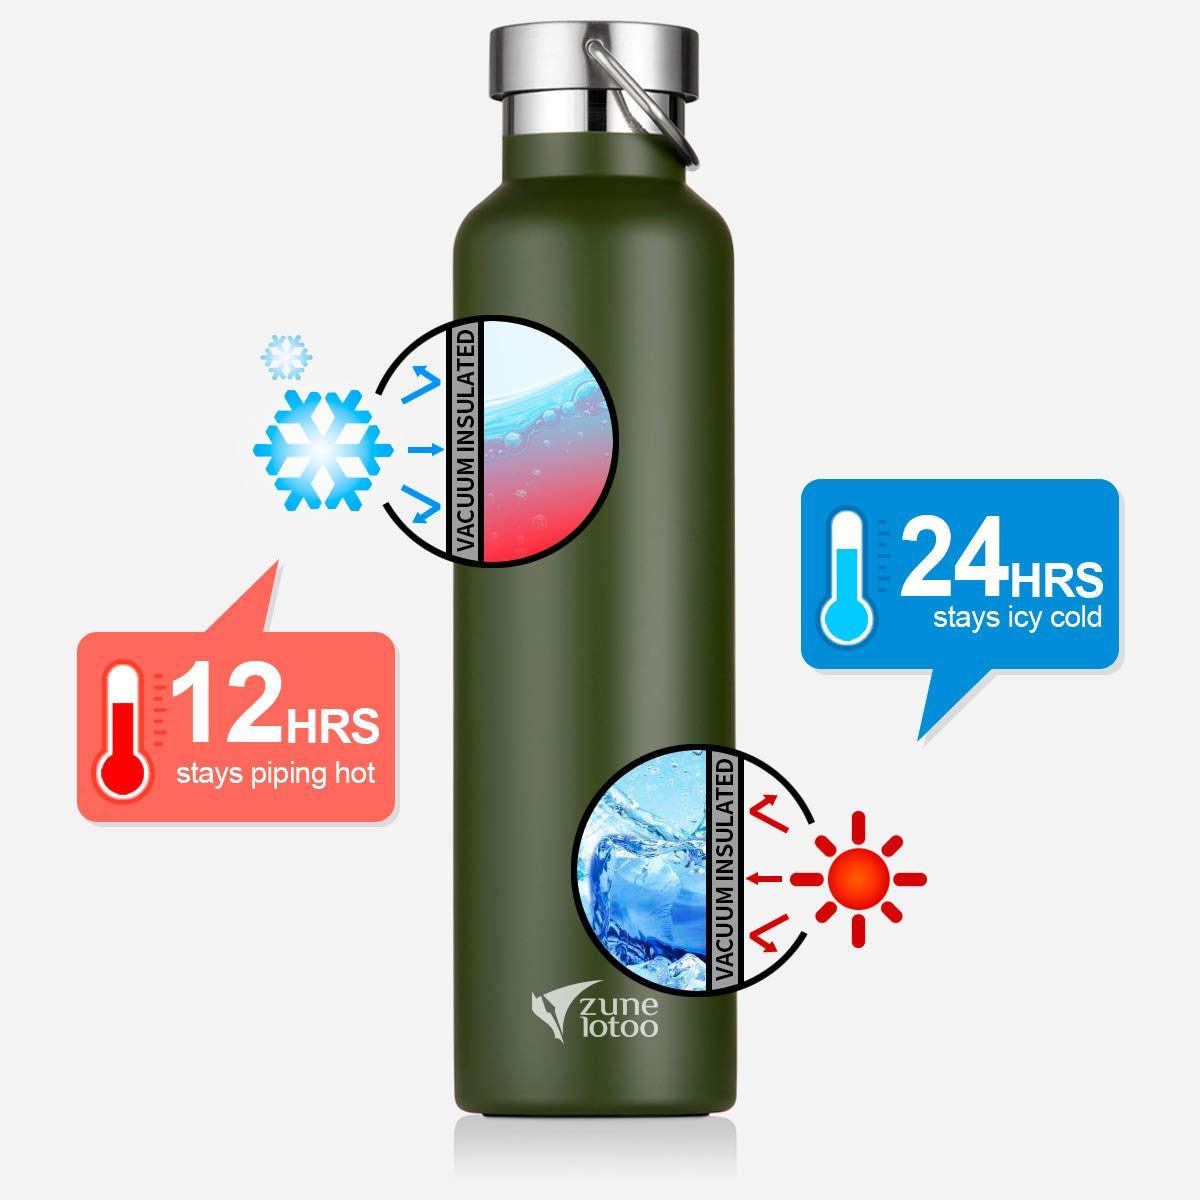 Wide Mouth Vacuum Insulated 18//8 Stainless Steel with Leak Proof Flex Cap for Camping,Hiking,Sports Zune Lotoo Stainless Steel Water Bottle 26oz